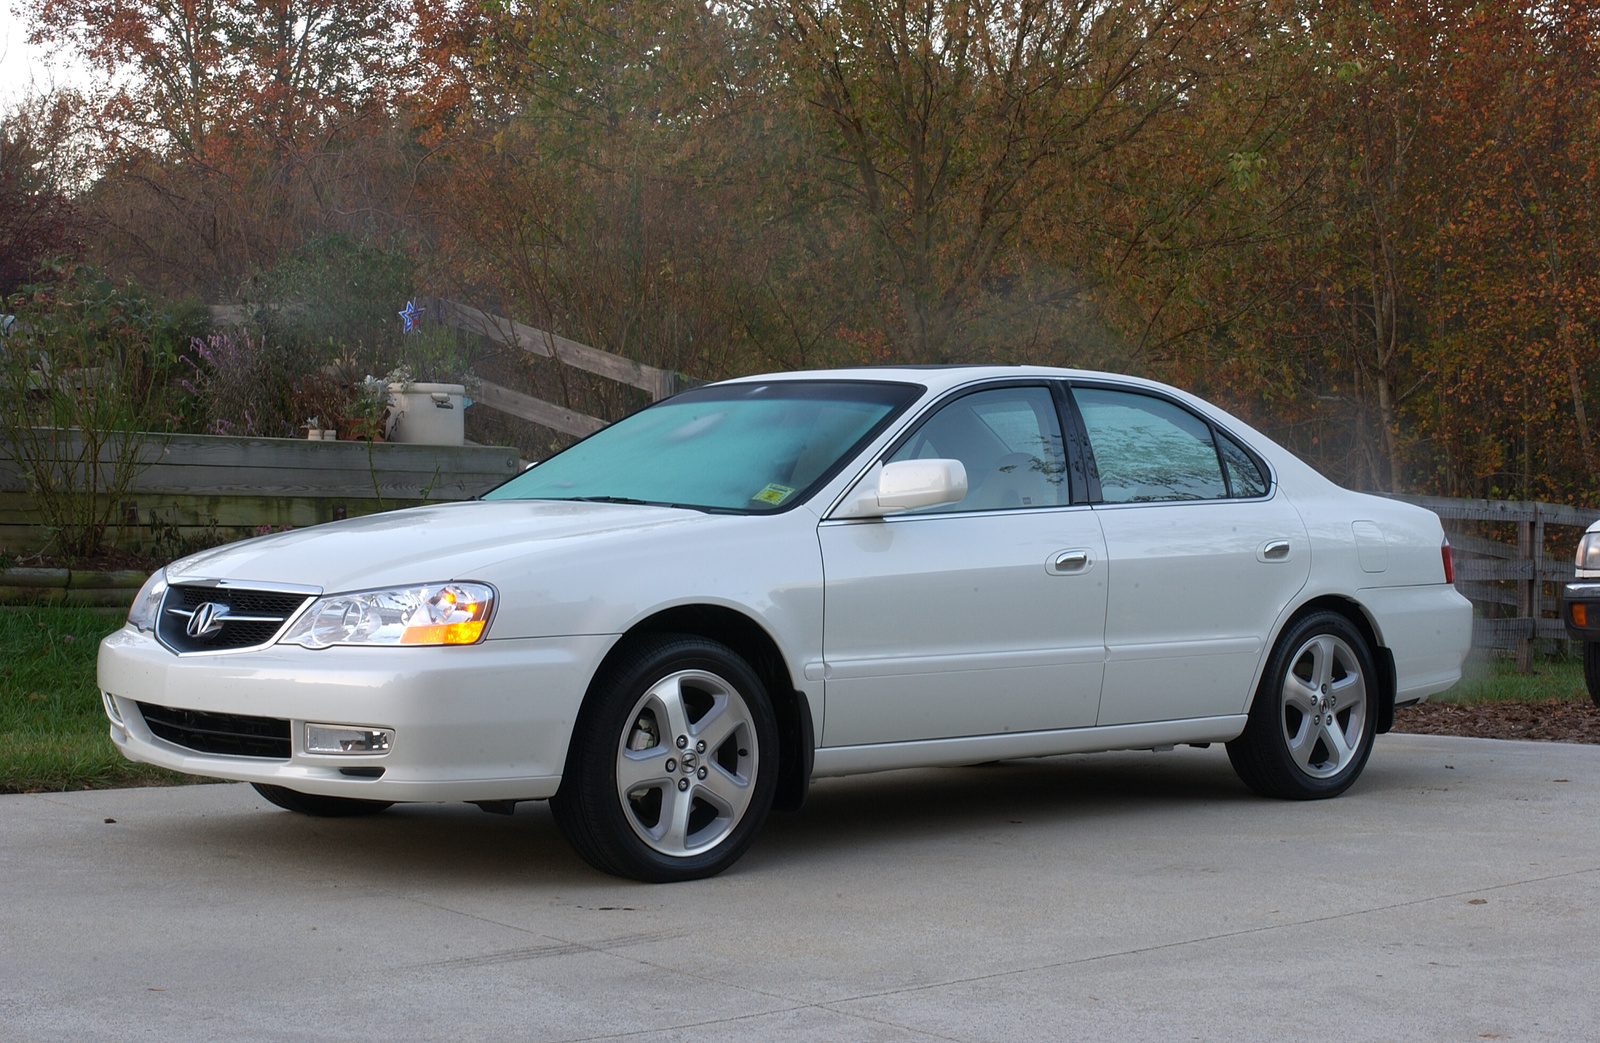 2002 acura tl overview cargurus rh cargurus com 1997 acura cl 2.2 repair manual 1997 acura cl owners manual